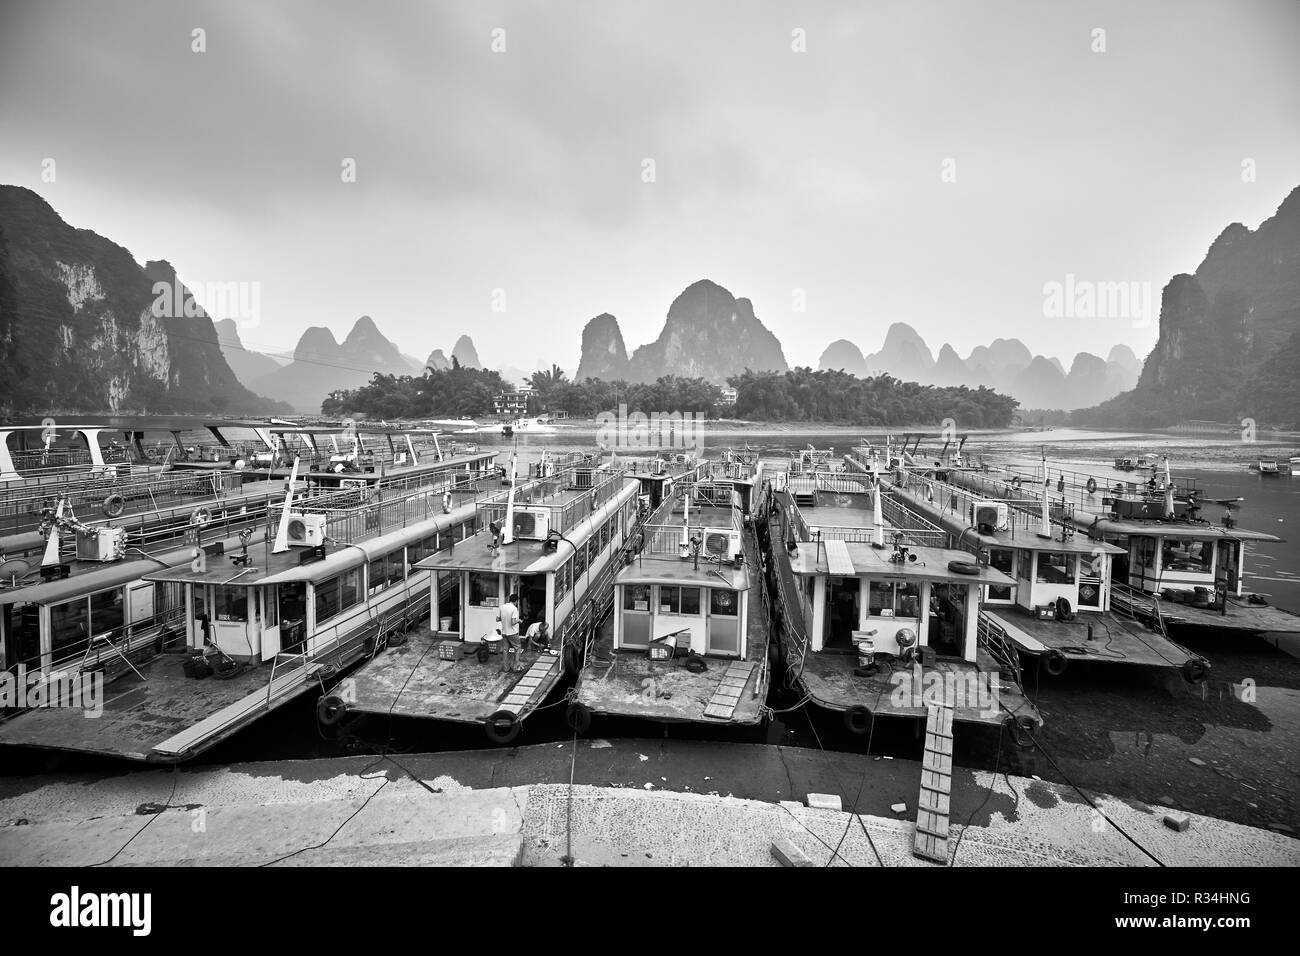 Xingping, Guangxi, China - September 18, 2017: Boats moored at the Lijiang River bank. - Stock Image